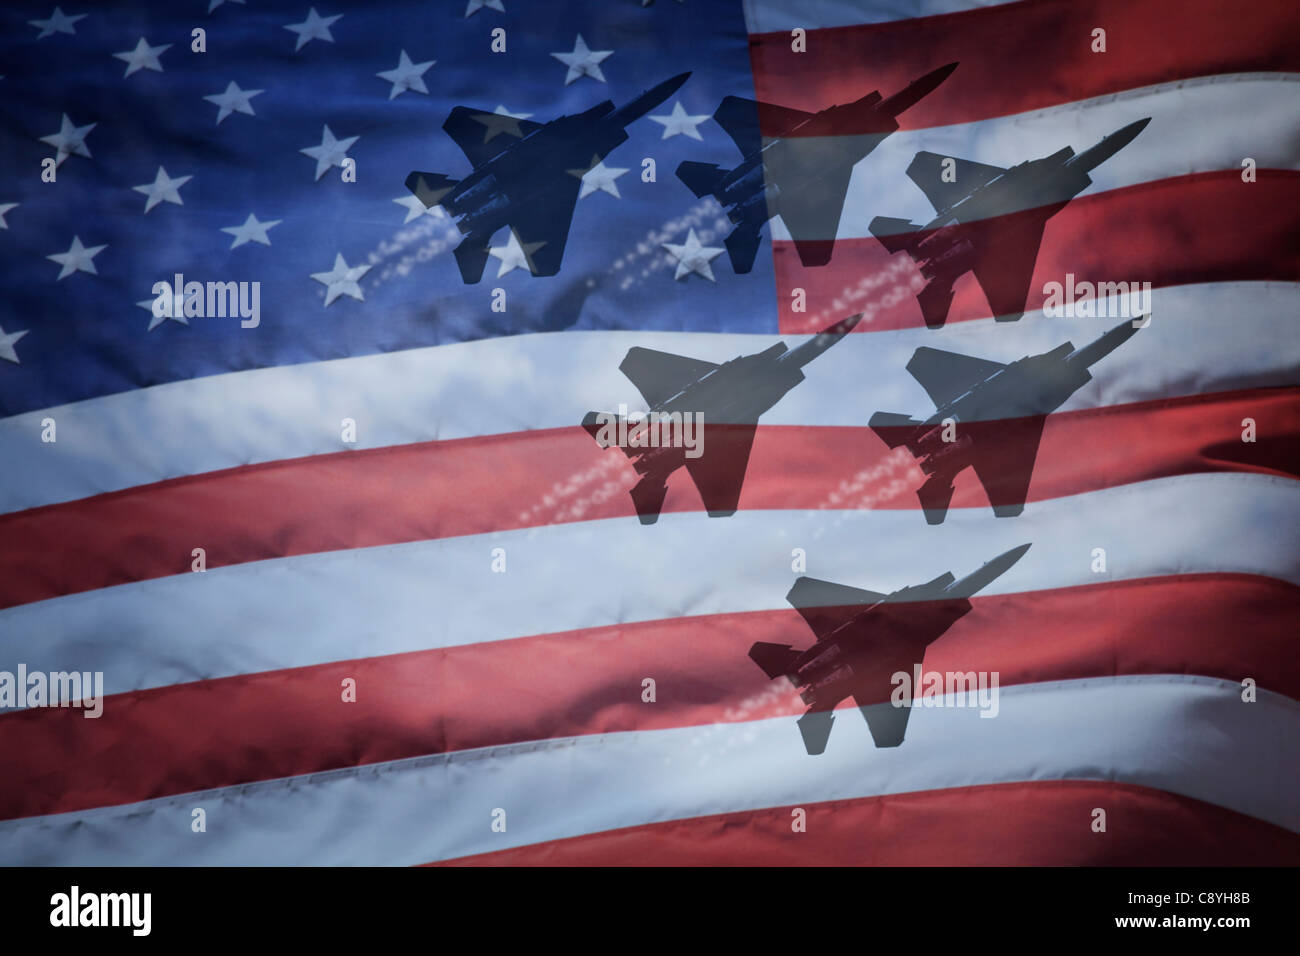 Close-up of American flag with silhouettes of F-16 airplanes - Stock Image